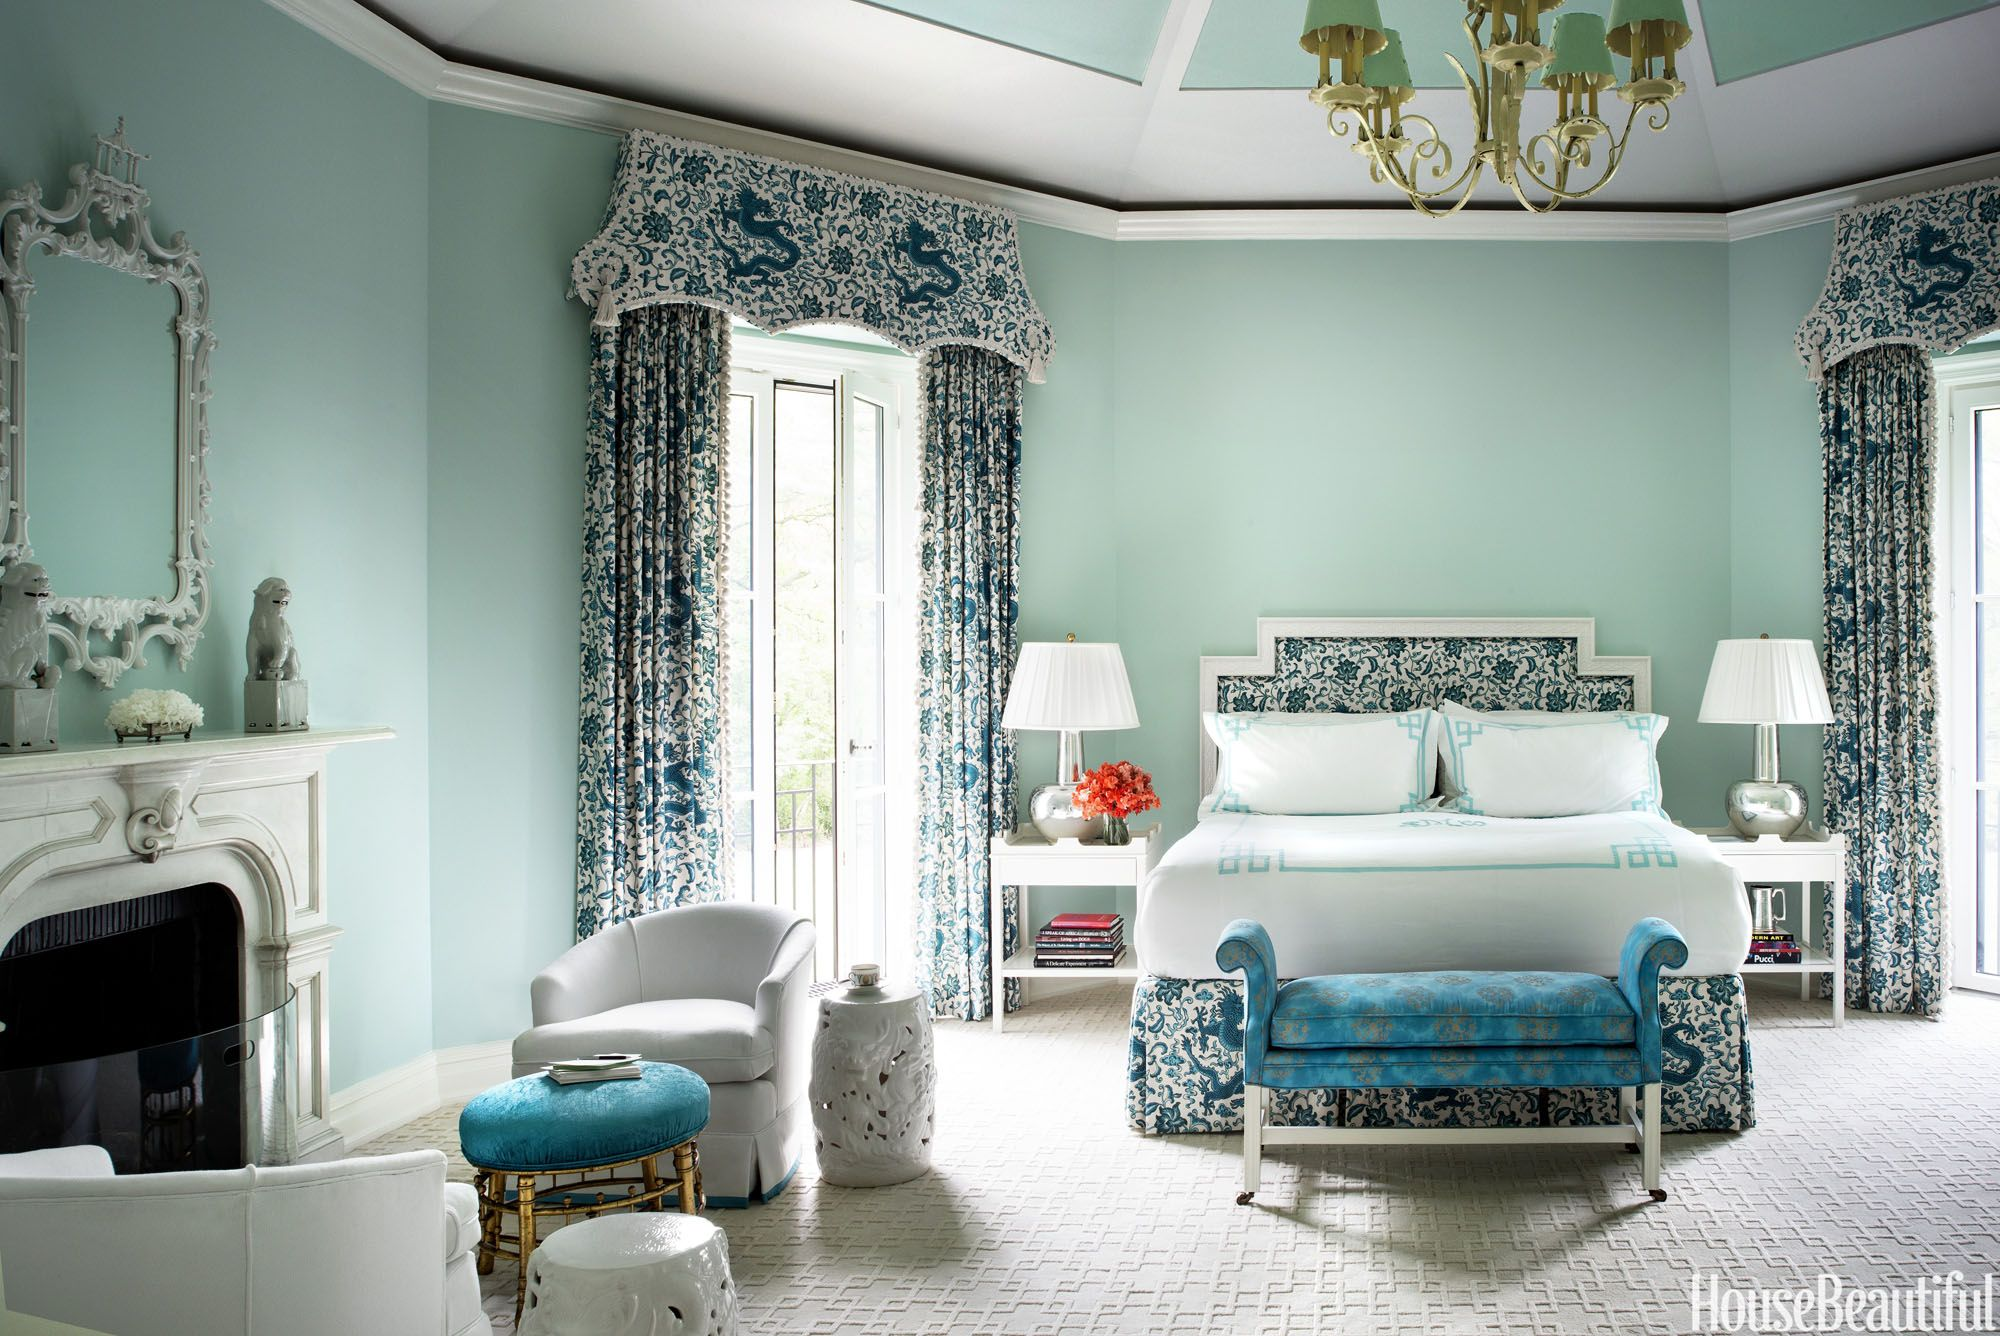 """""""Aqua is elegant and flattering. You feel pretty in this bedroom, and pretty never goes out of style."""" In the master bedroom, Tiffany blue walls — Benjamin Moore's Blue Bonnet — are a cool counterpoint to the deeper hues in the fabrics, from Scalamandré's Chi'en Dragon for the bed and curtains to Osborne & Little's Limpopo on the stool. Vintage swivel chairs are covered in Kravet's Soleil.    - HouseBeautiful.com"""